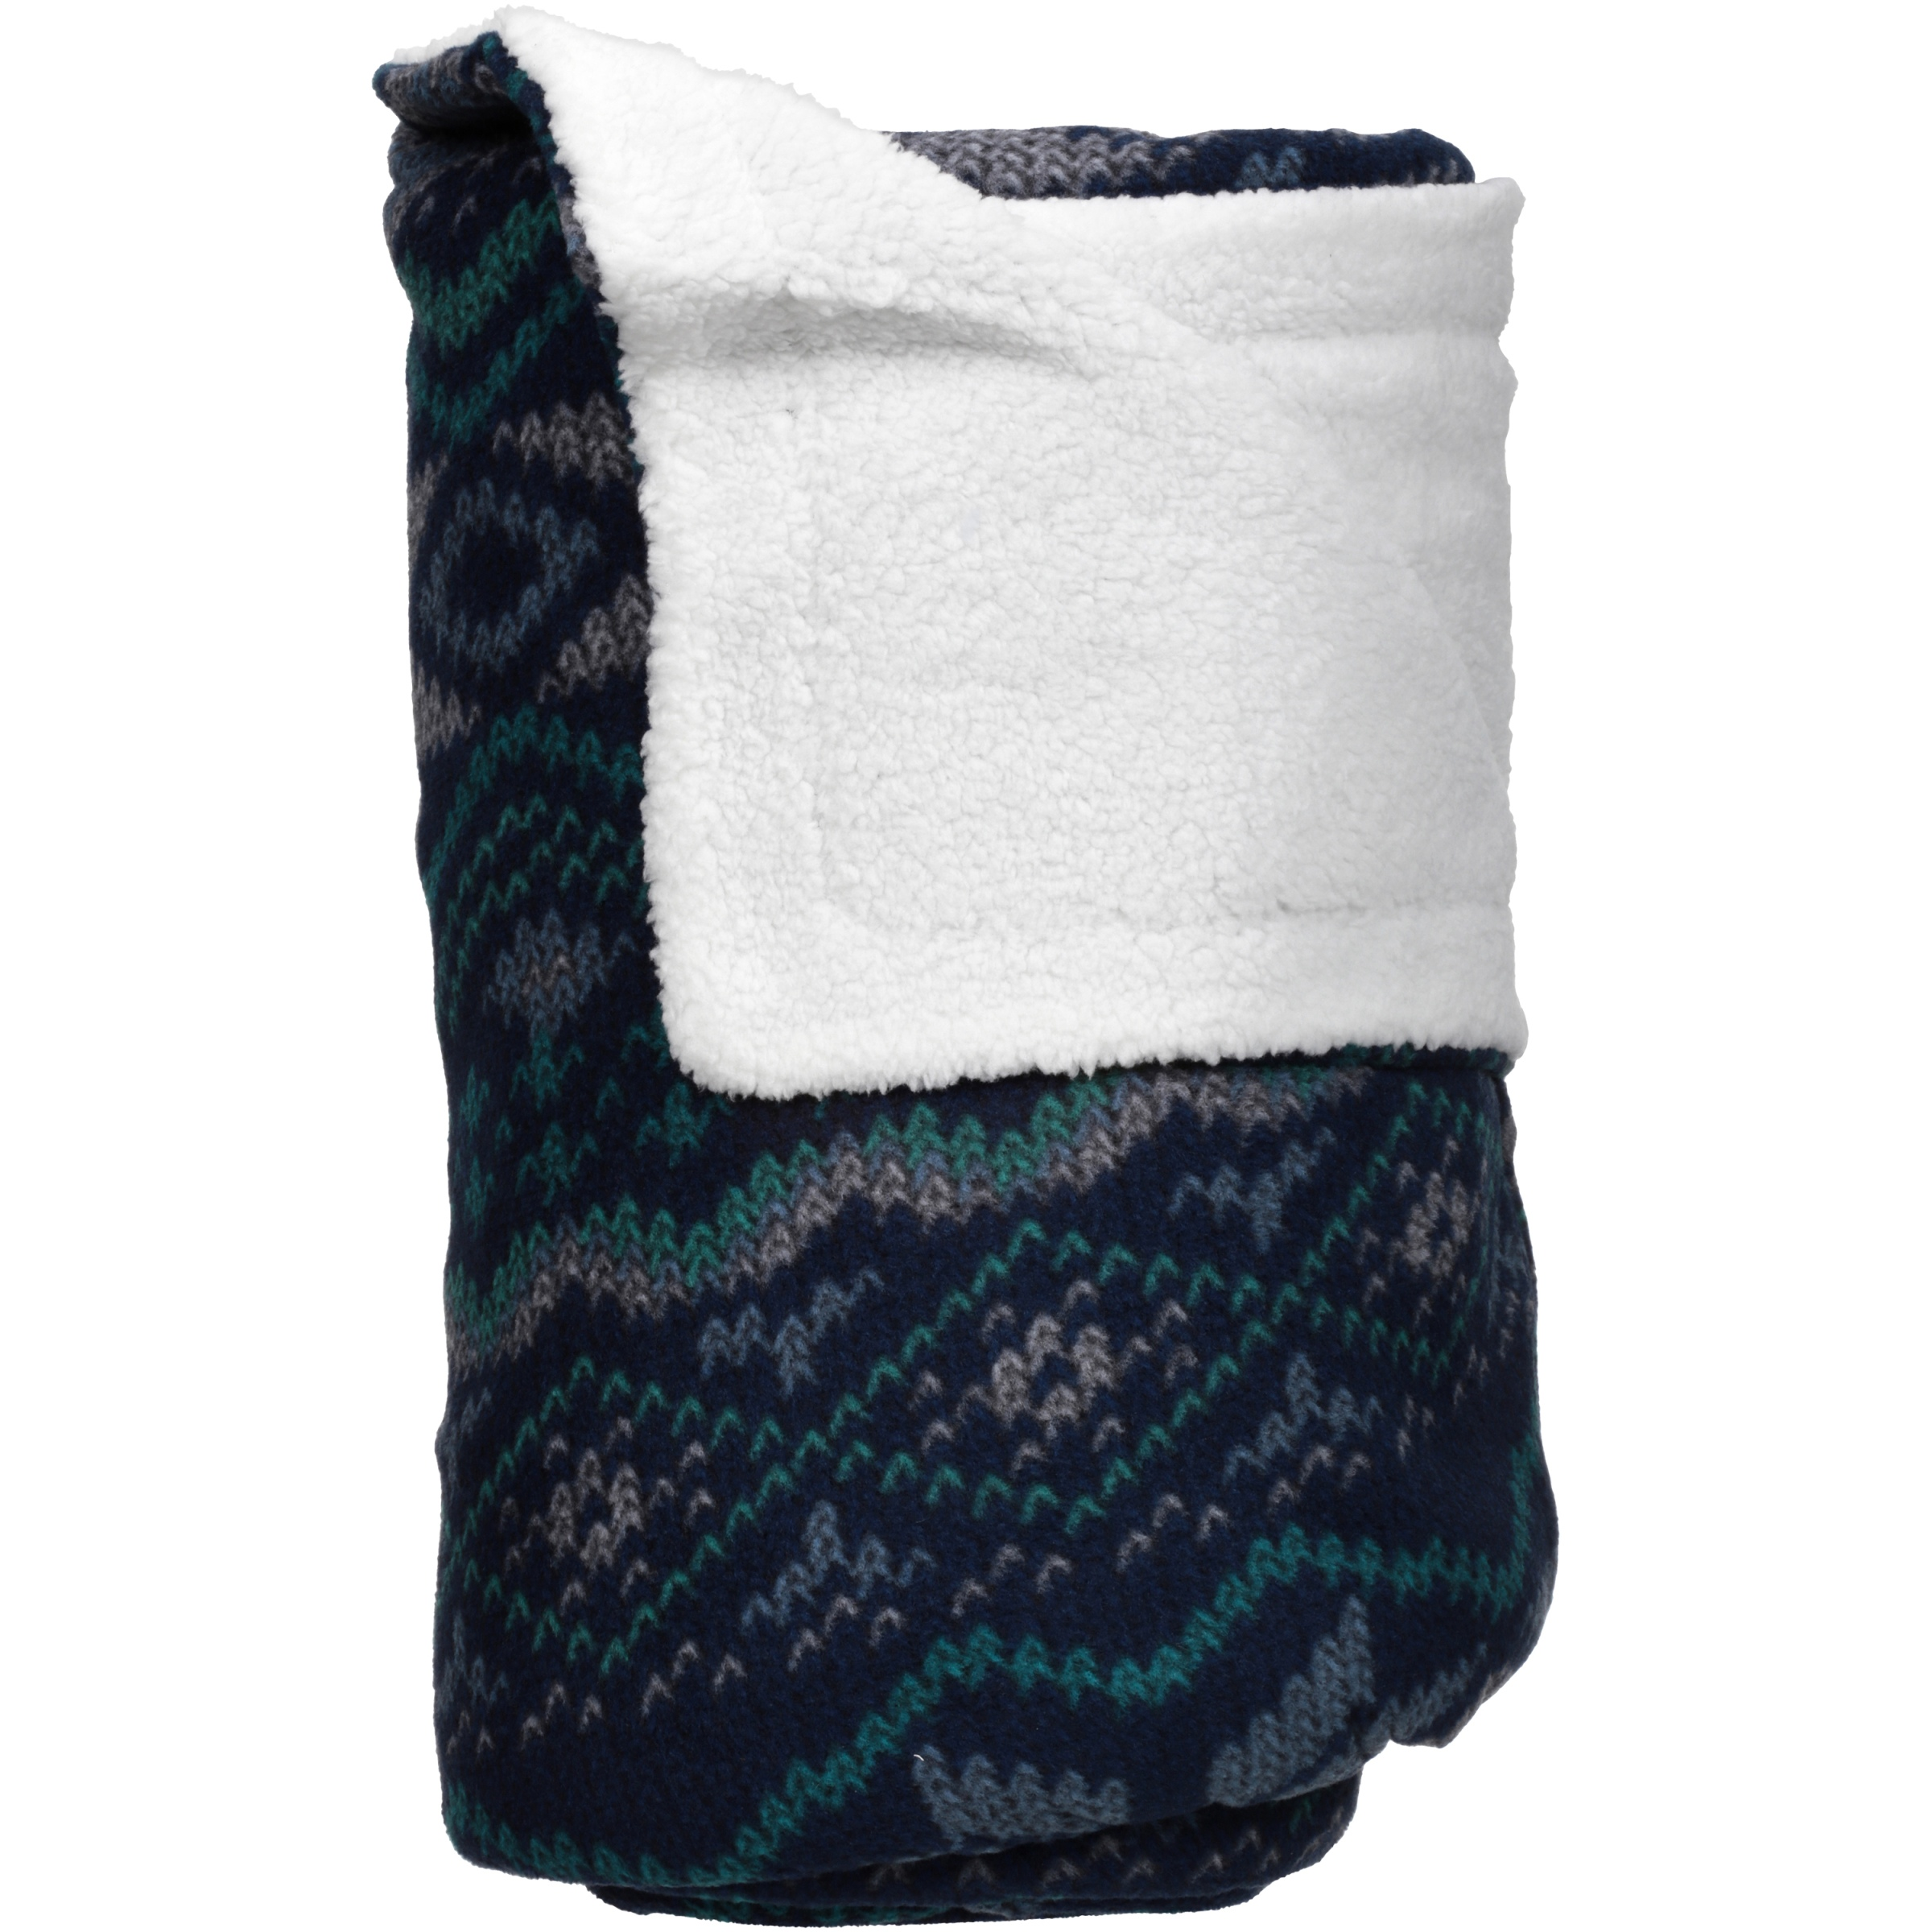 Mainstays Soft & Cozy Fleece to Sherpa Throw Blanket